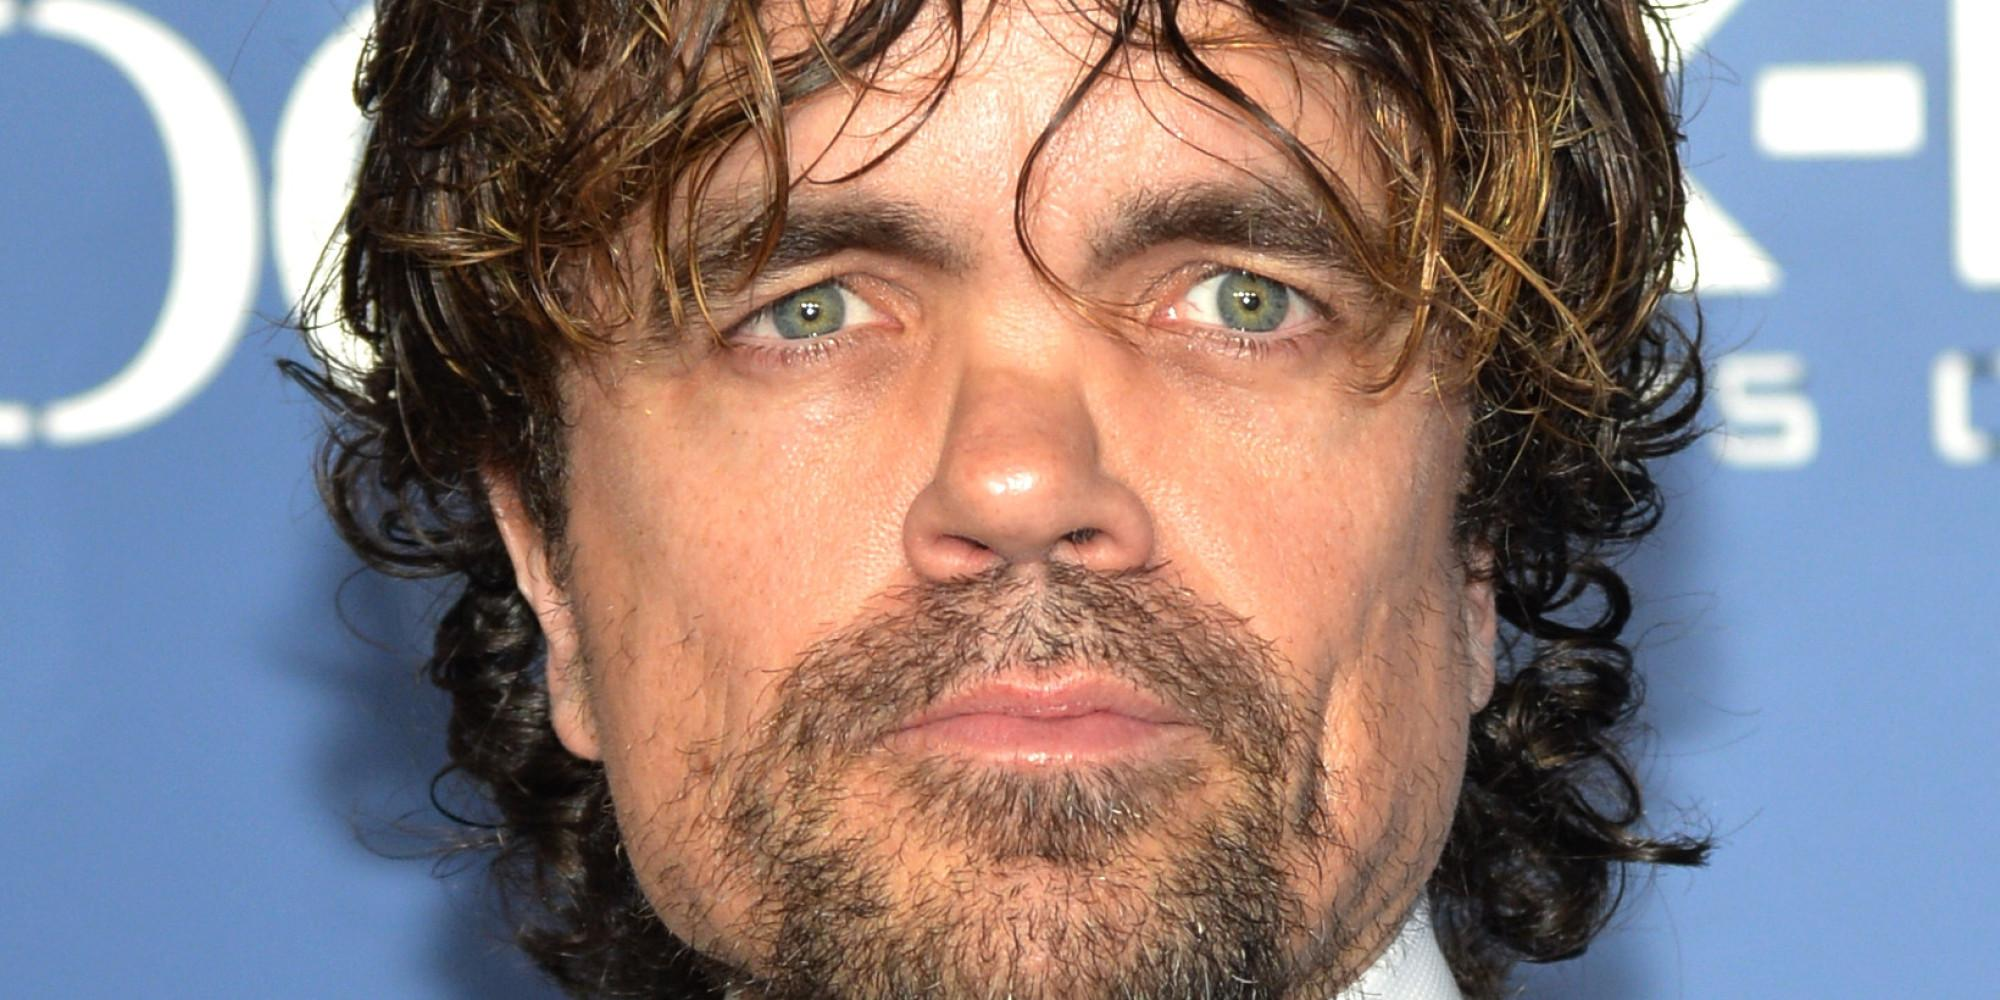 Peter Dinklage Taking A 'Selfie' With Grumpy Cat Is The